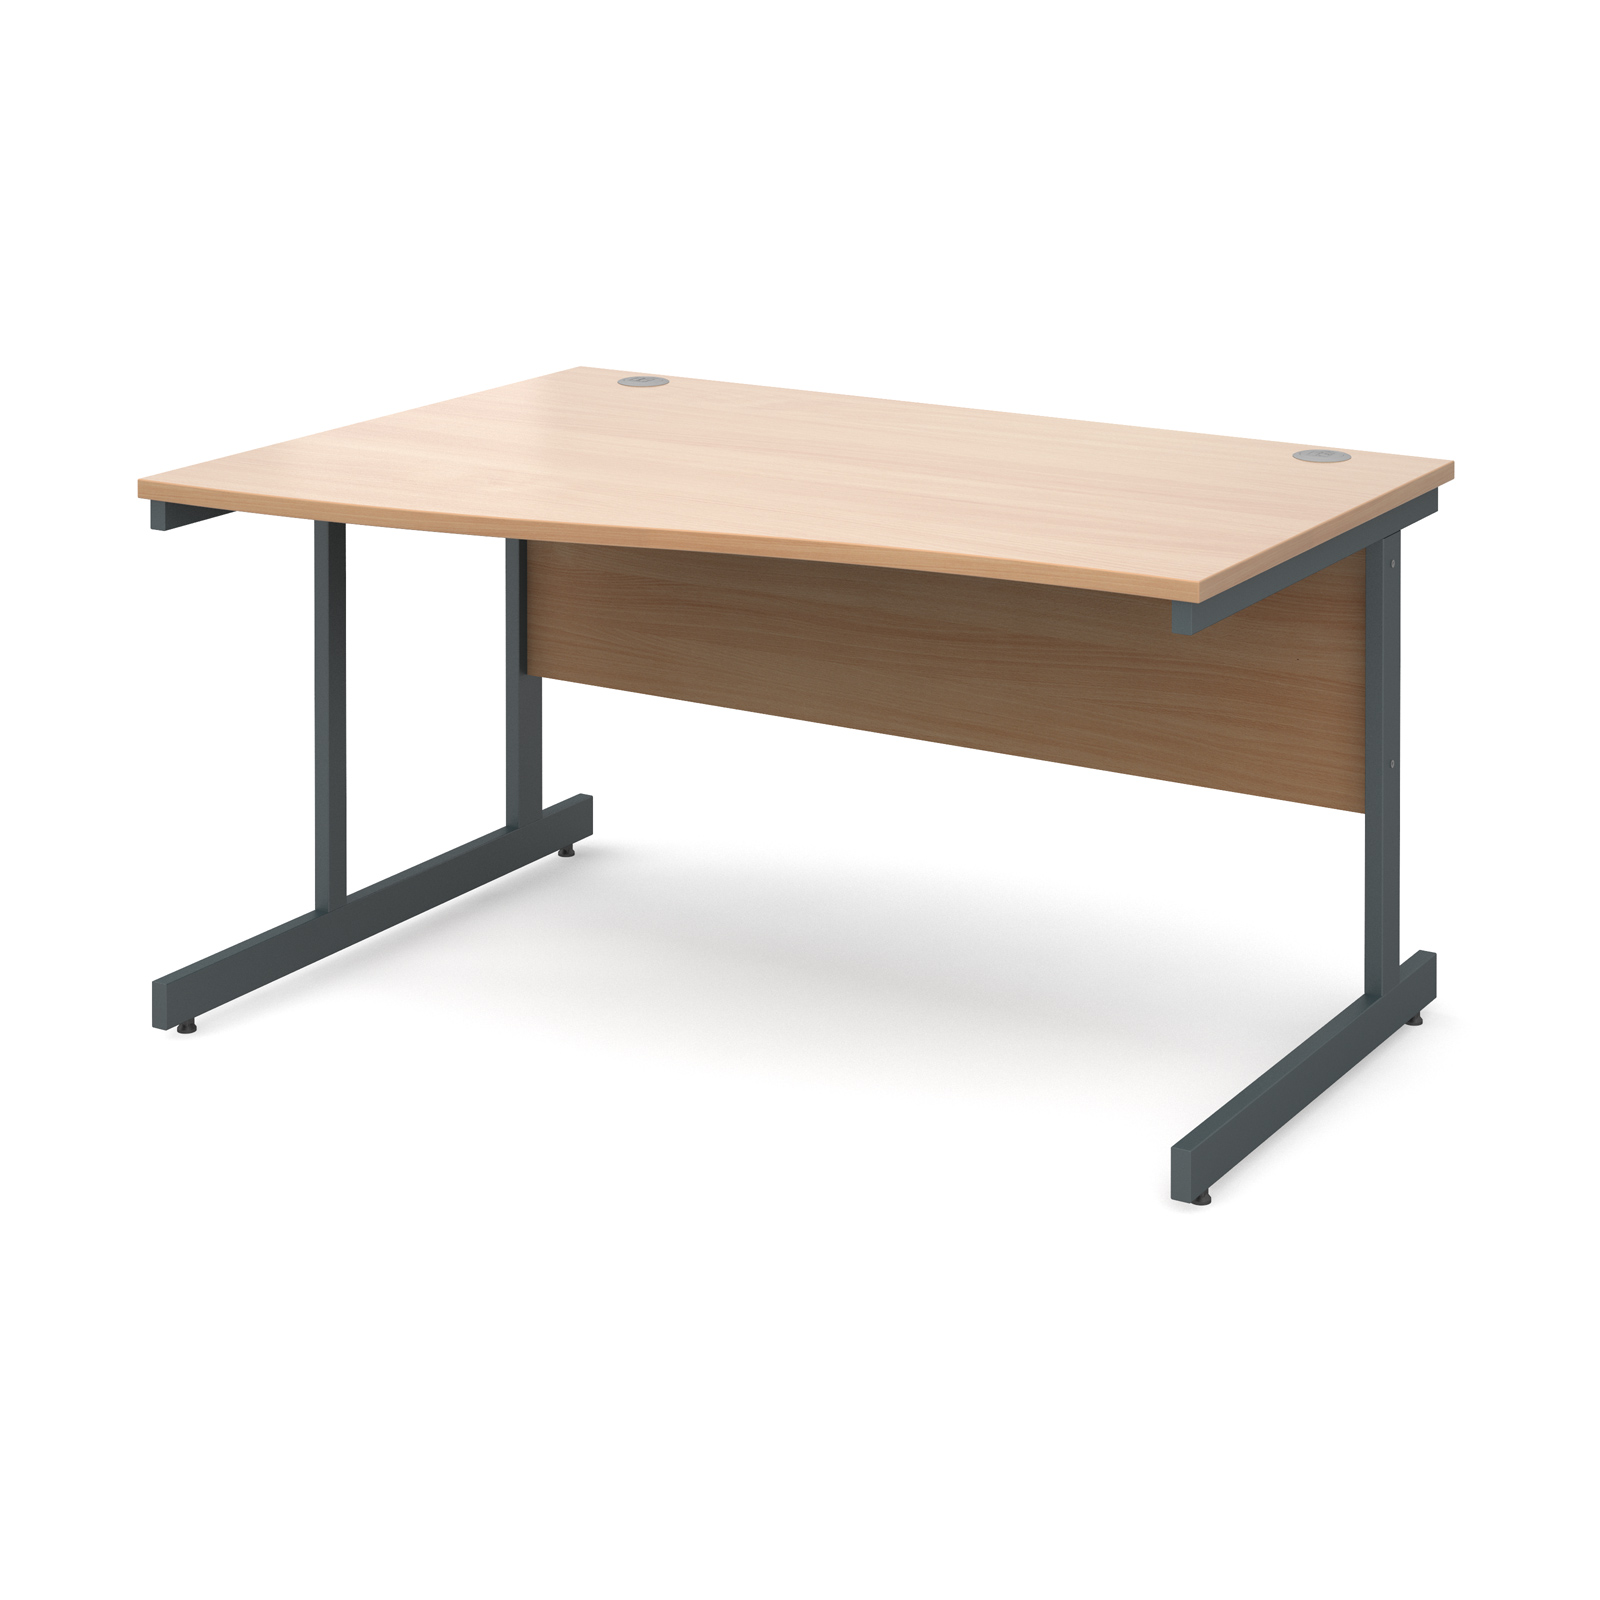 Contract 25 left hand wave desk 1400mm - graphite cantilever frame, beech top